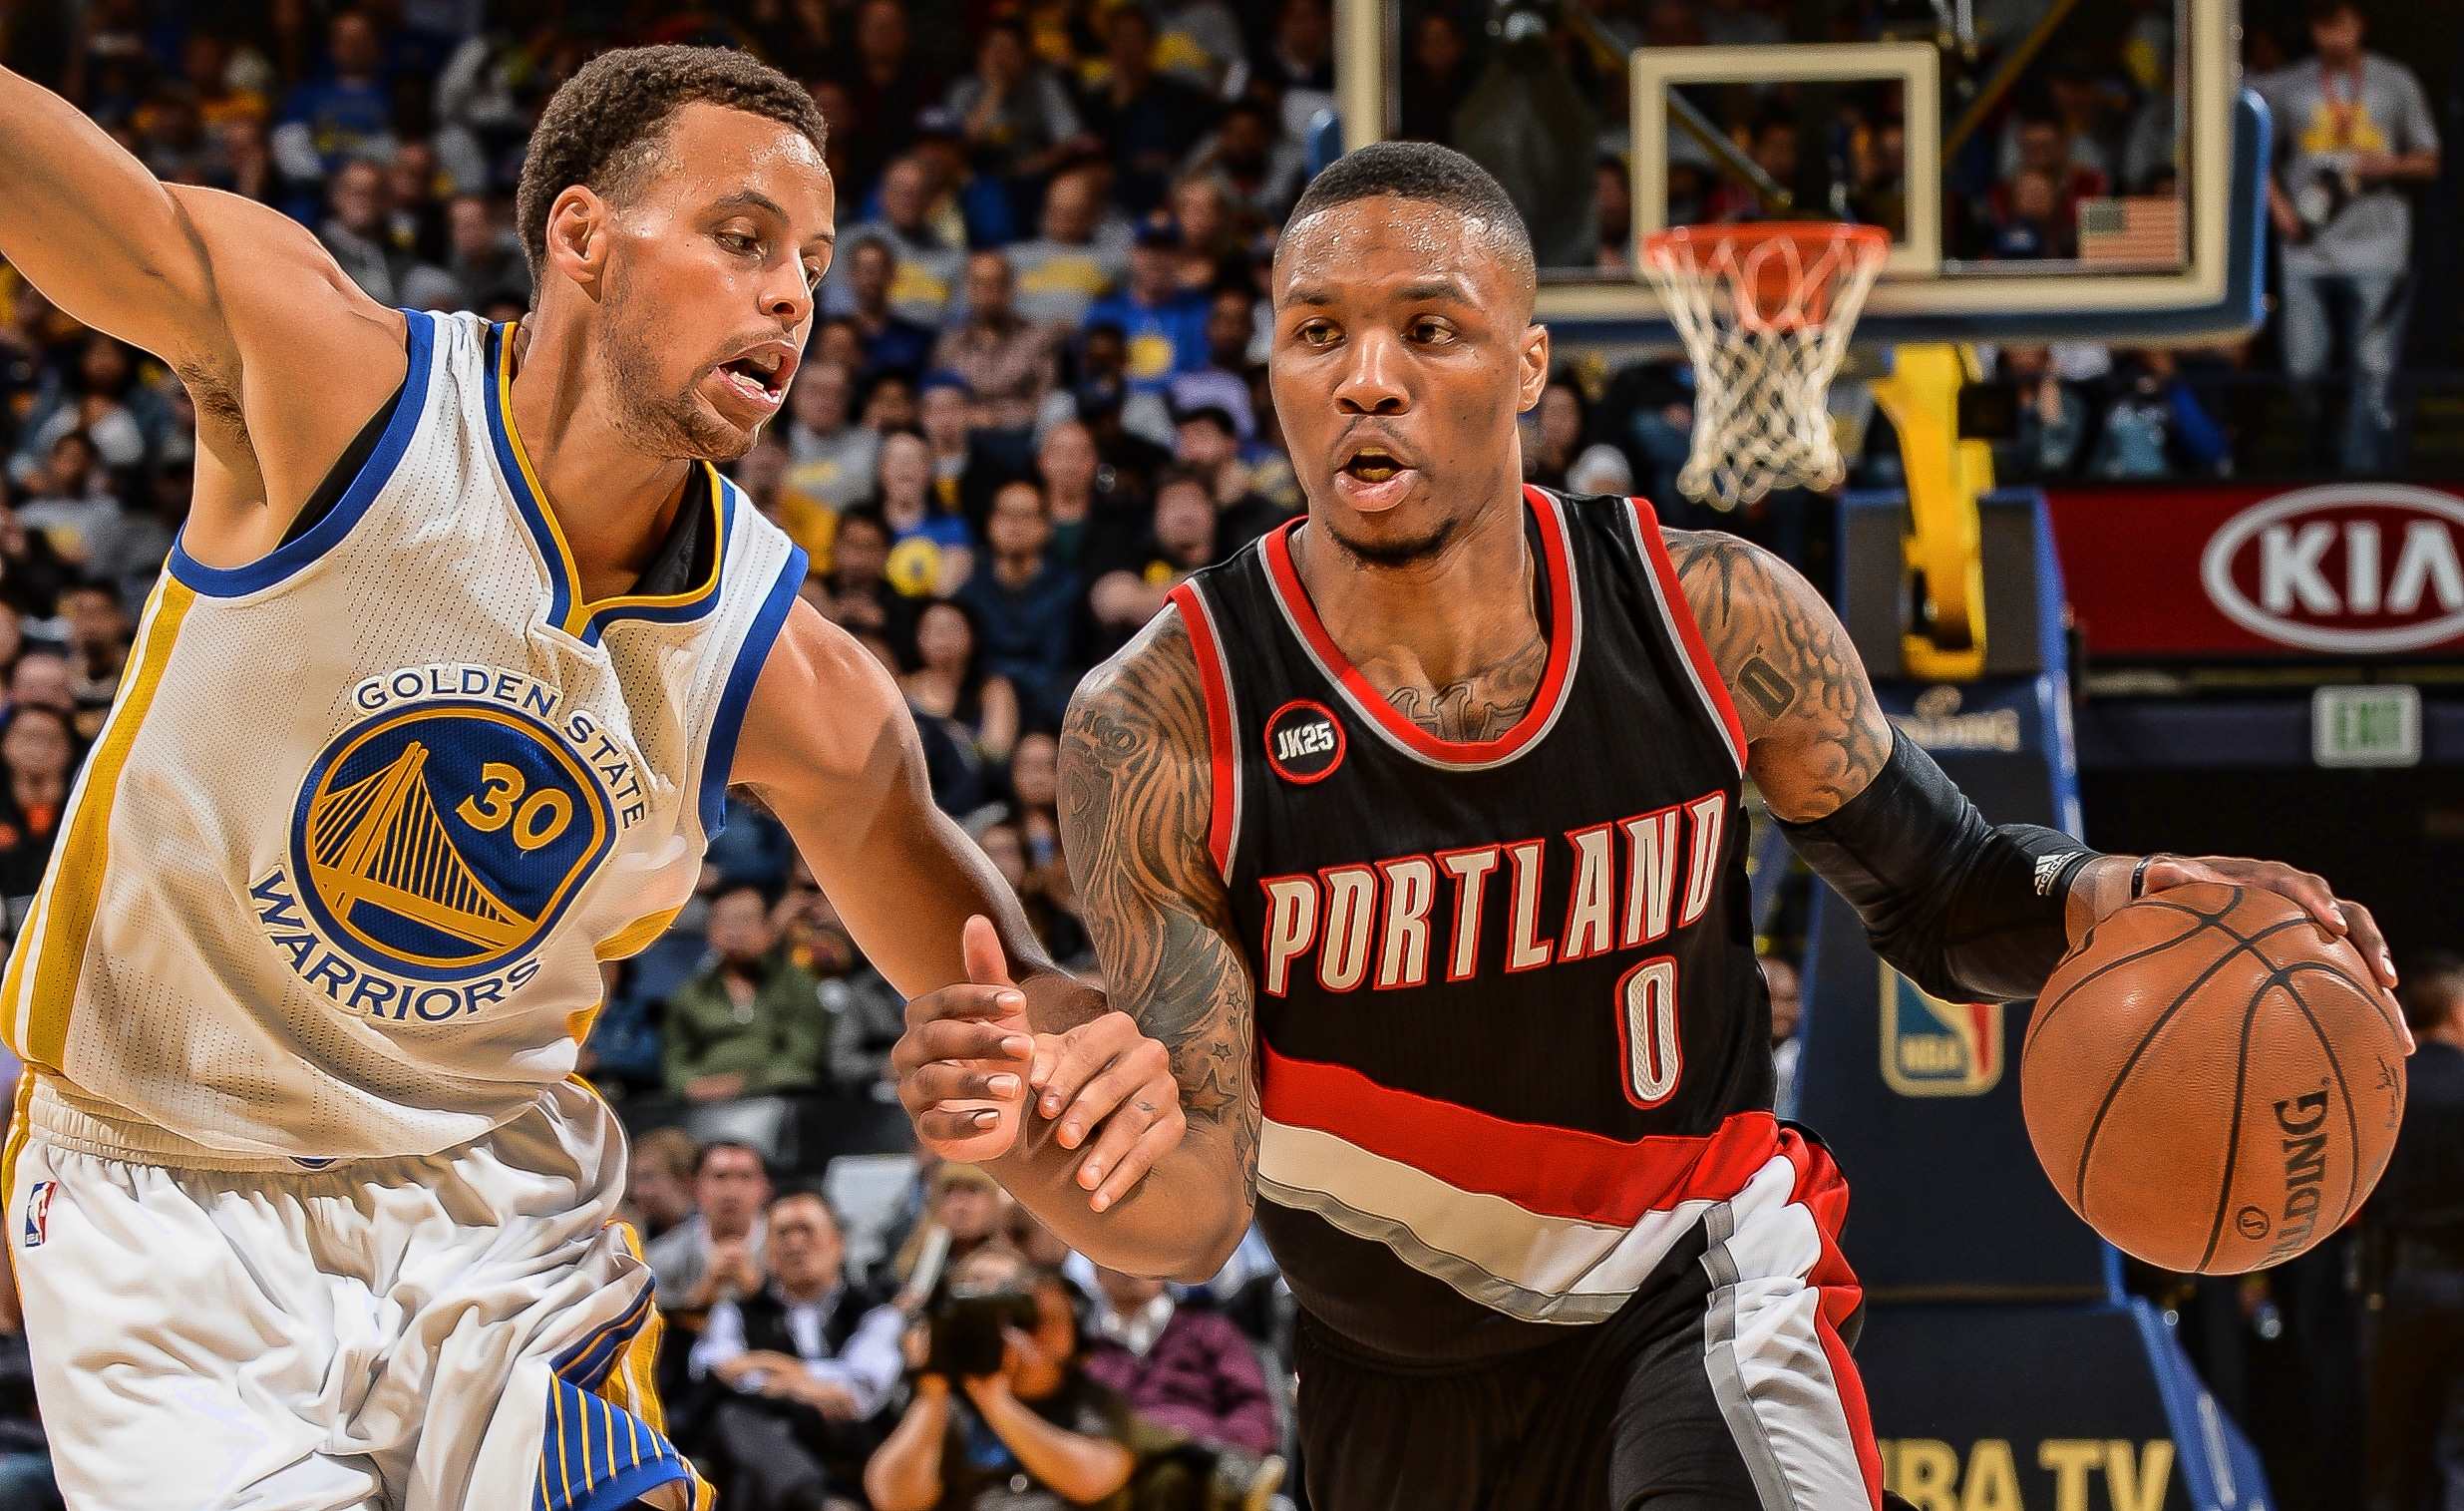 Blazers vs Warriors Game 2 Predictions: Will Every Game be a Blowout?